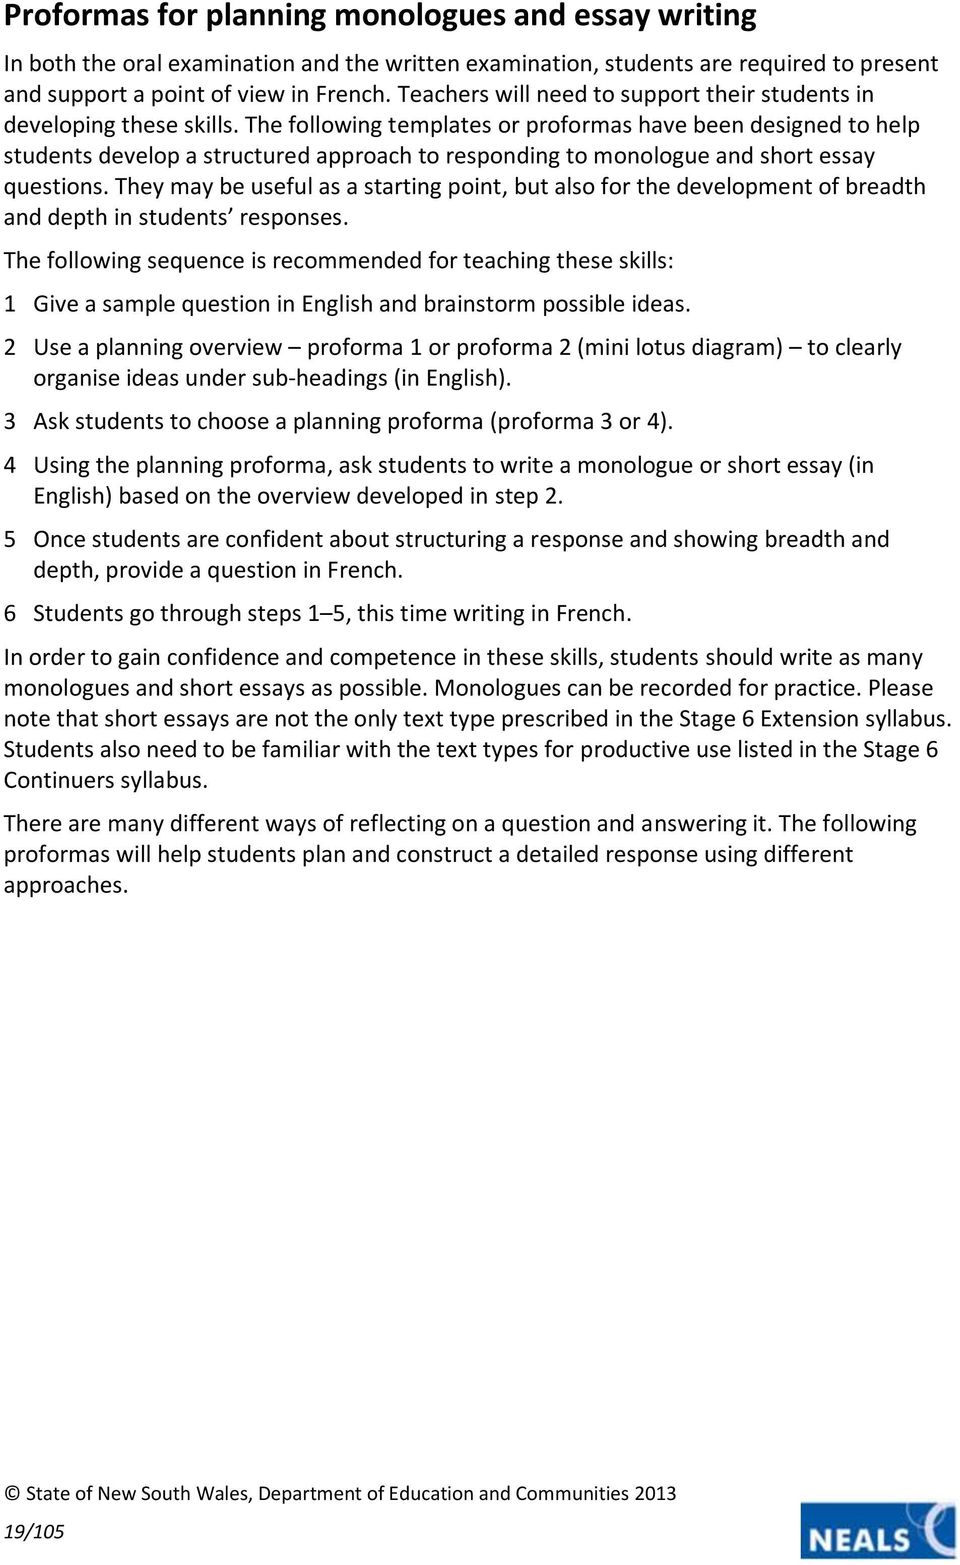 french extension contents support materials hsc stage 6 the following templates or proformas have been designed to help students develop a structured approach to